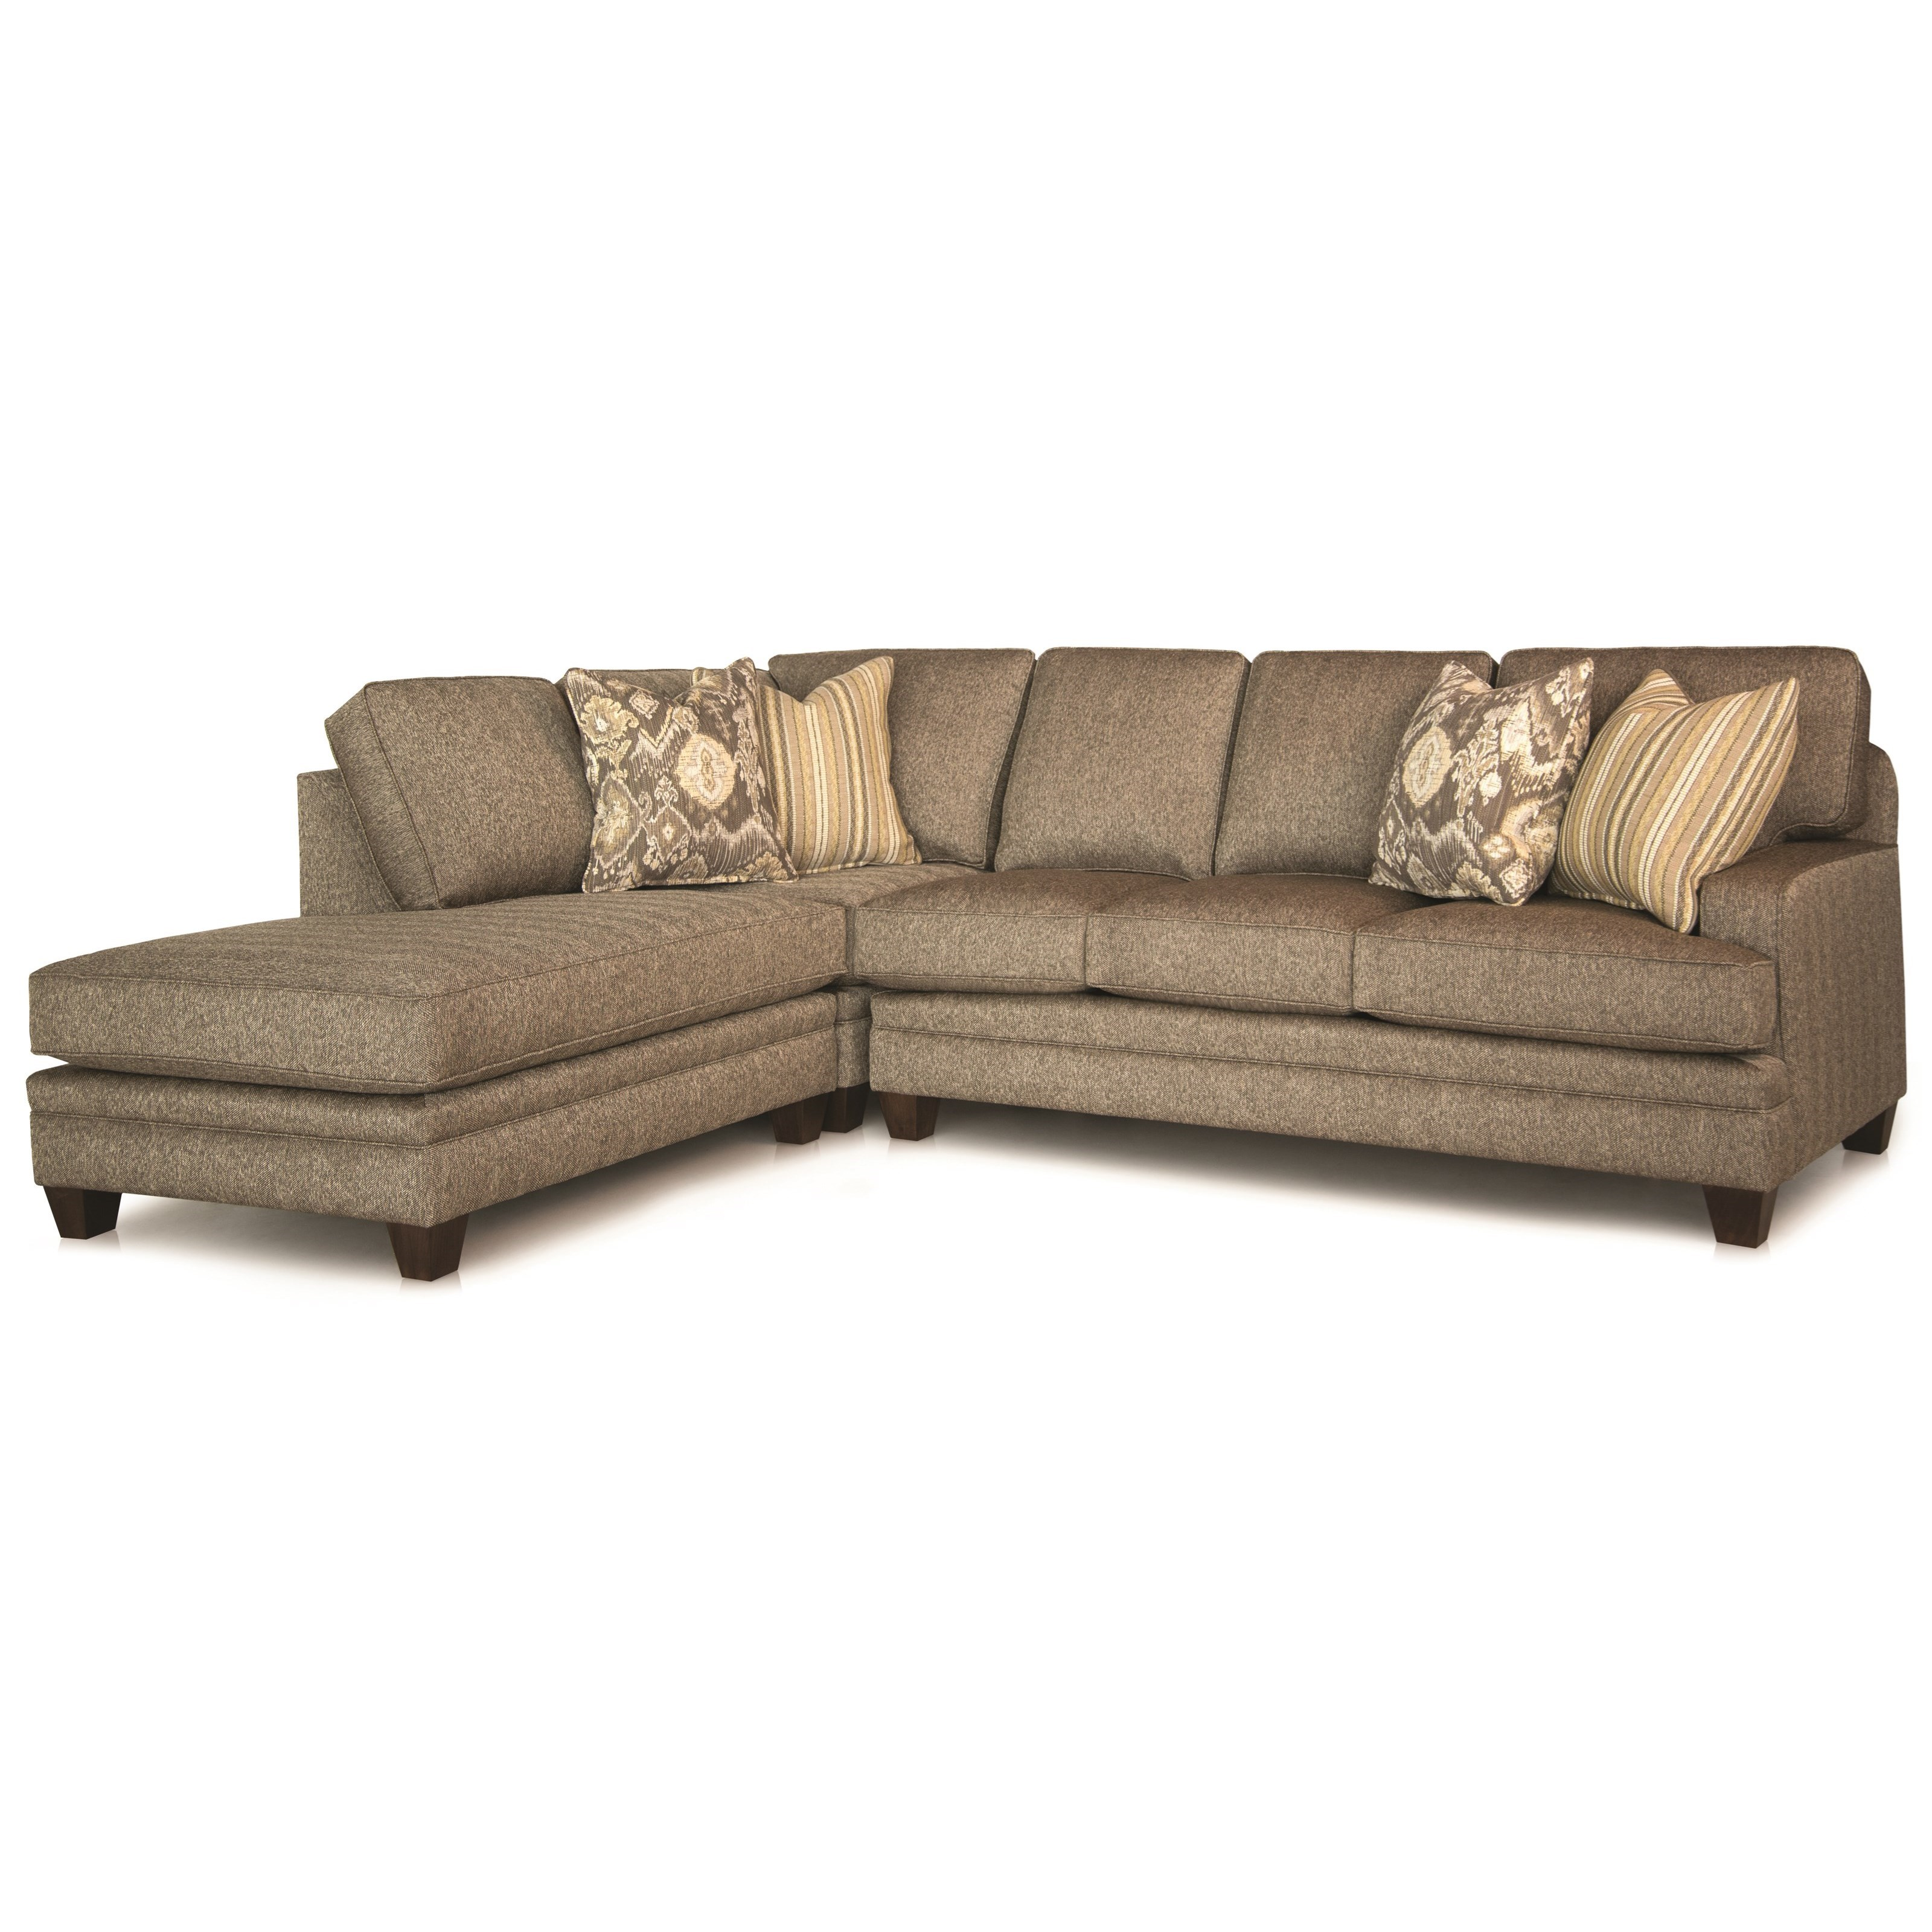 Build Your Own 5000 Series Customizable Chaise Sectional by Smith Brothers at Saugerties Furniture Mart